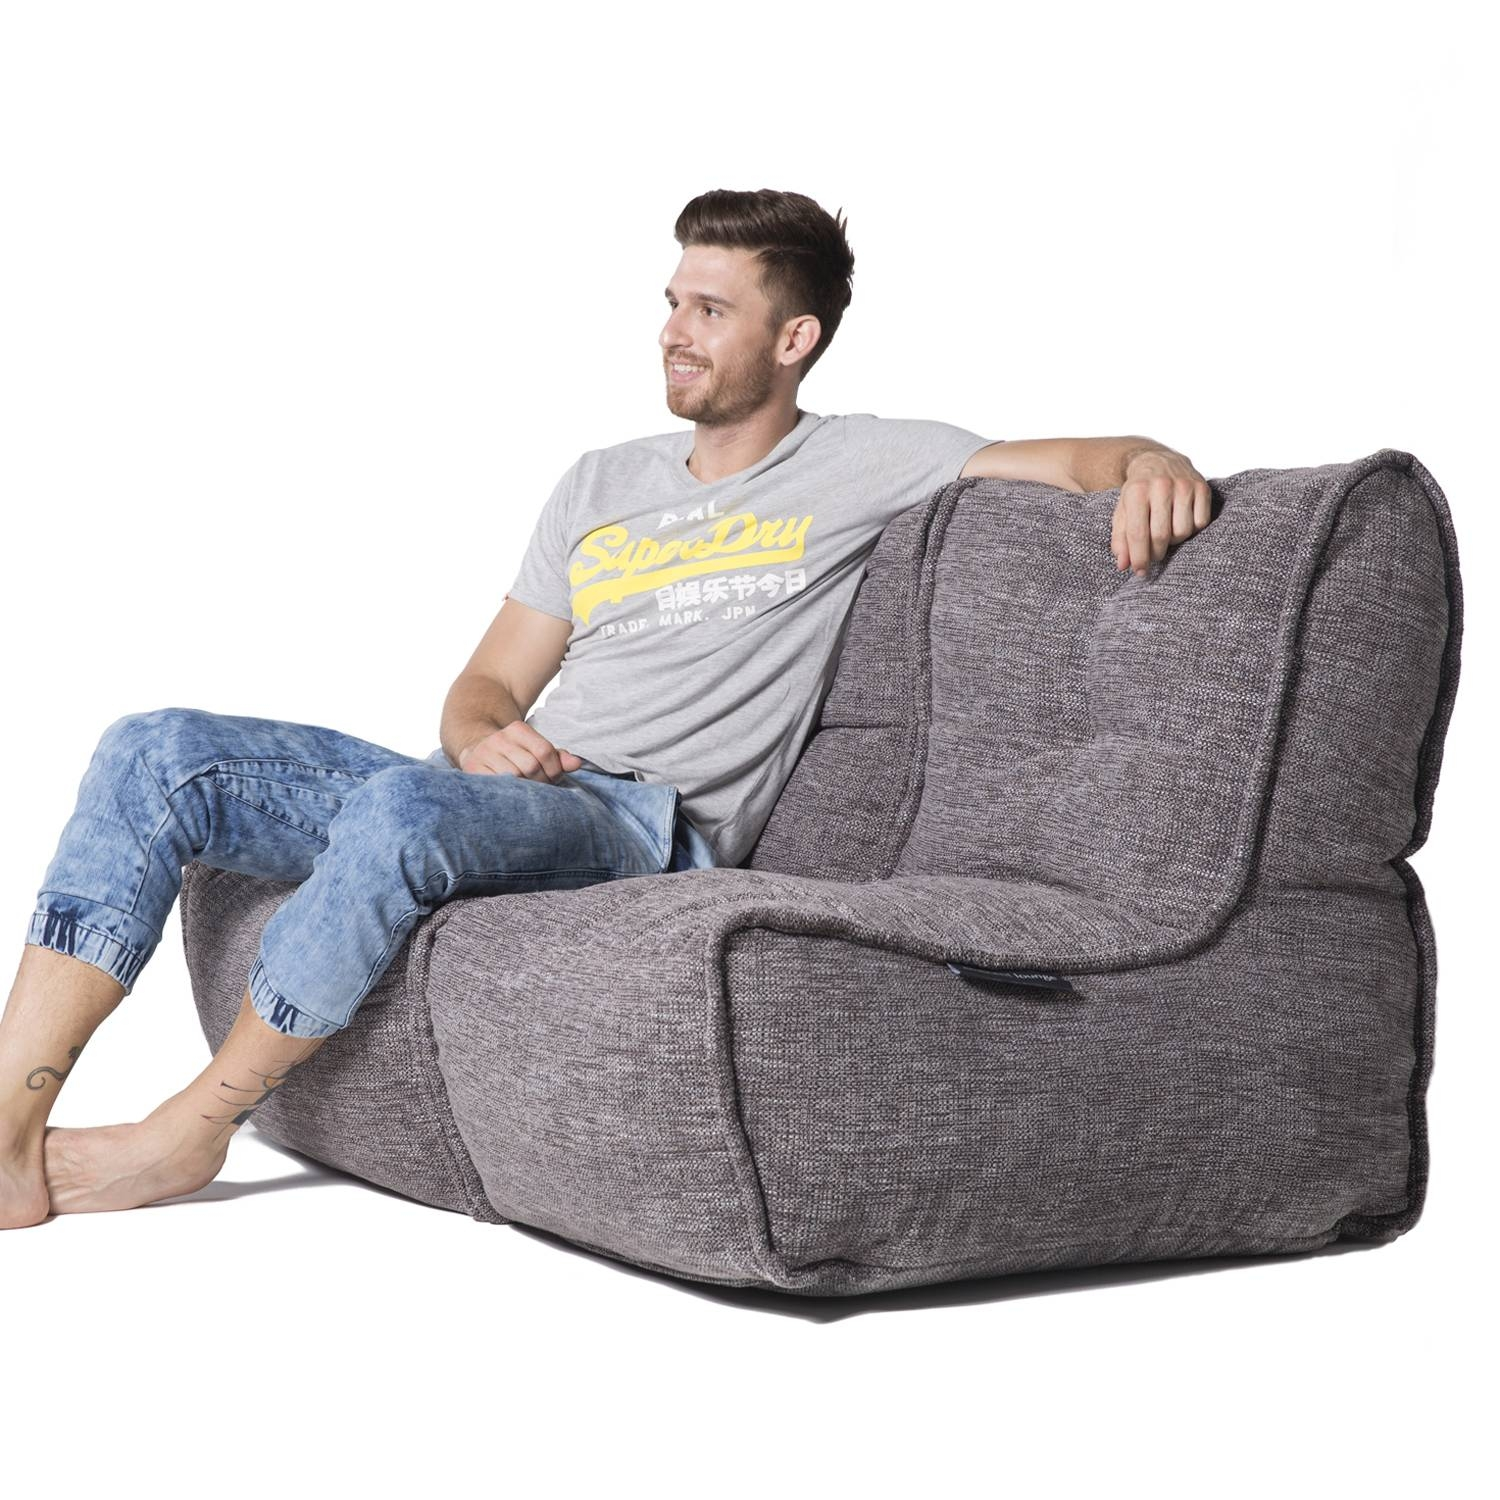 2 Seater Gery Sofa | Designer Bean Bag Couch | Grey Fabric | Bean intended for Bean Bag Sofas and Chairs (Image 1 of 15)